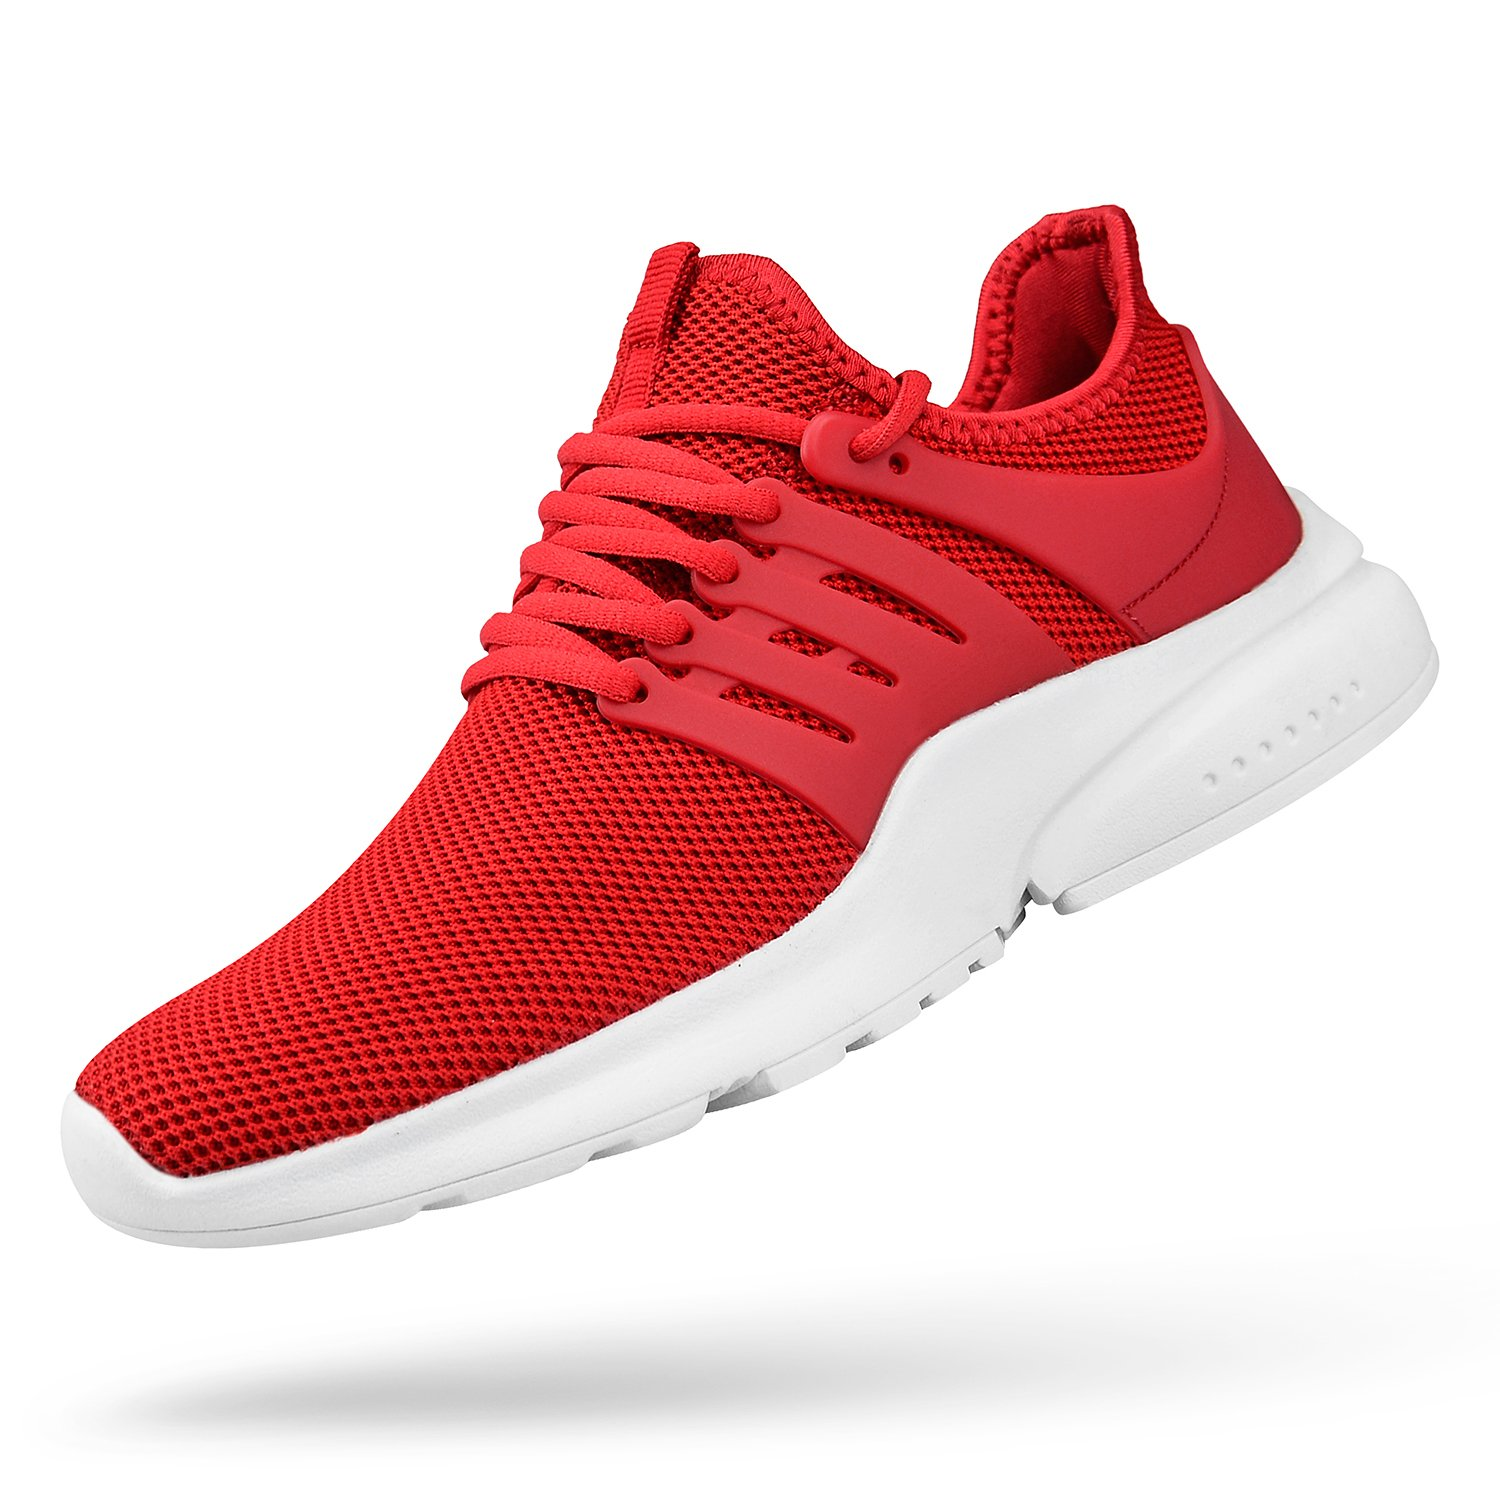 QANSI Mens Sneakers Mesh Breathable Lightweight Sports Running Shoes Fashion Gym Summer B07D16PZ2D 12.5 D(M) US|Red/White